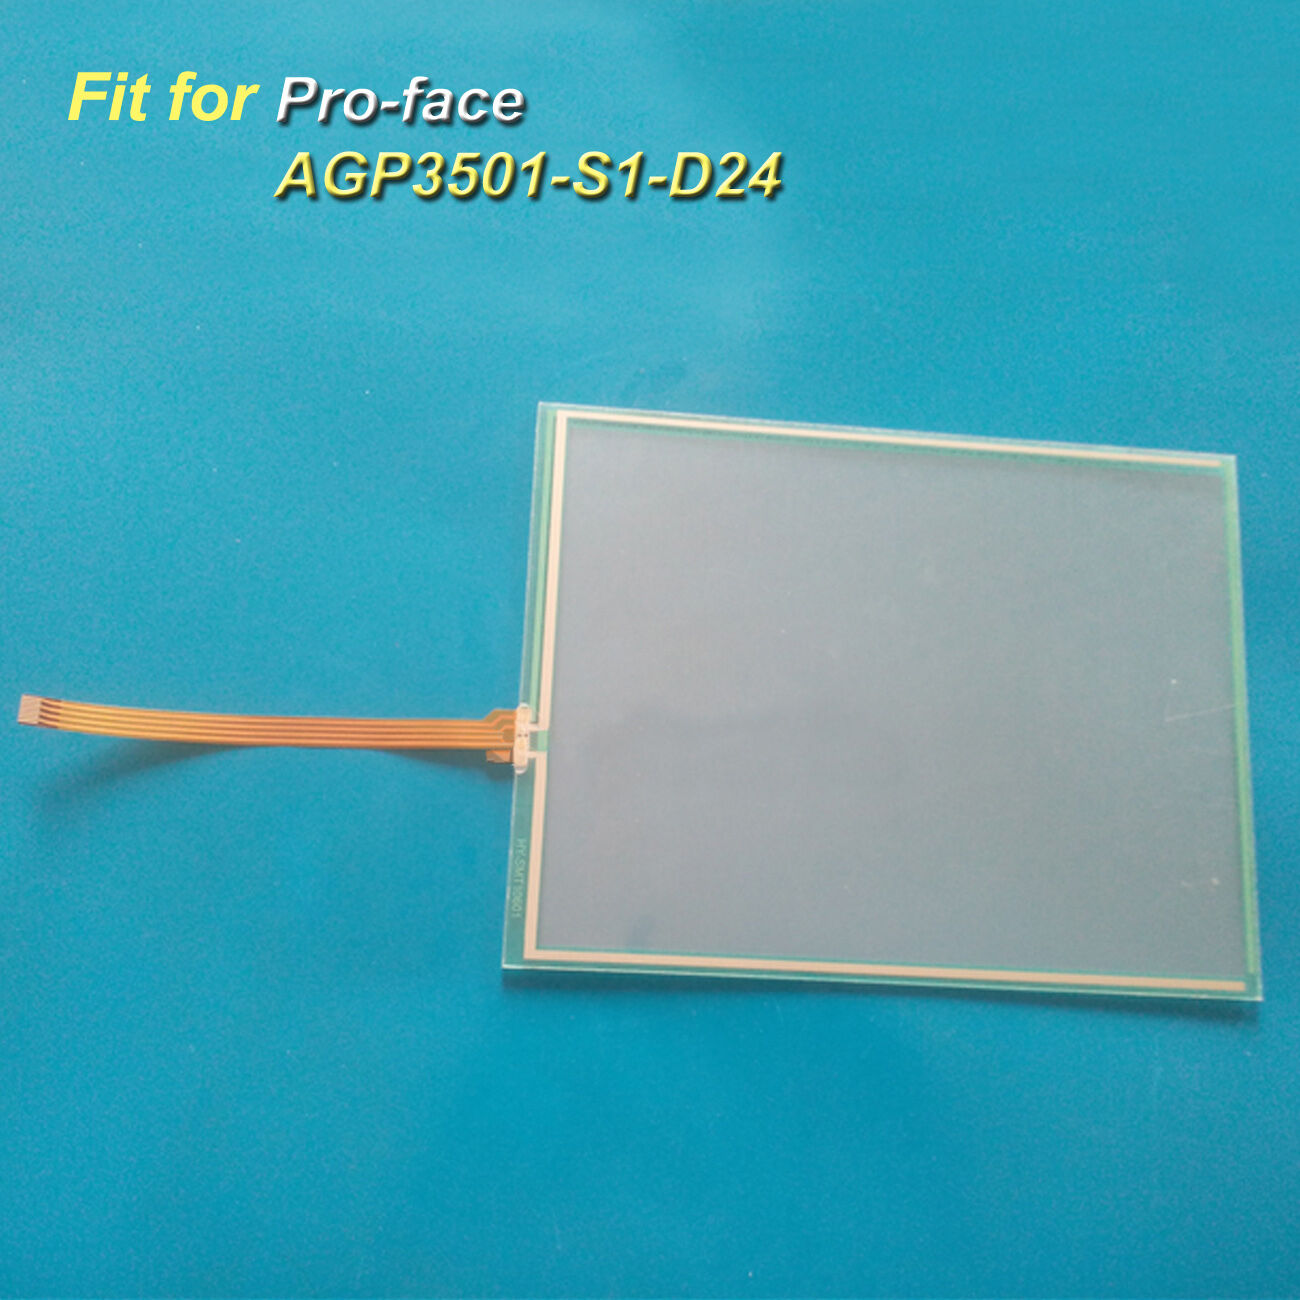 New For Pro-face AGP3501-S1-D24 Touch Screen Glass